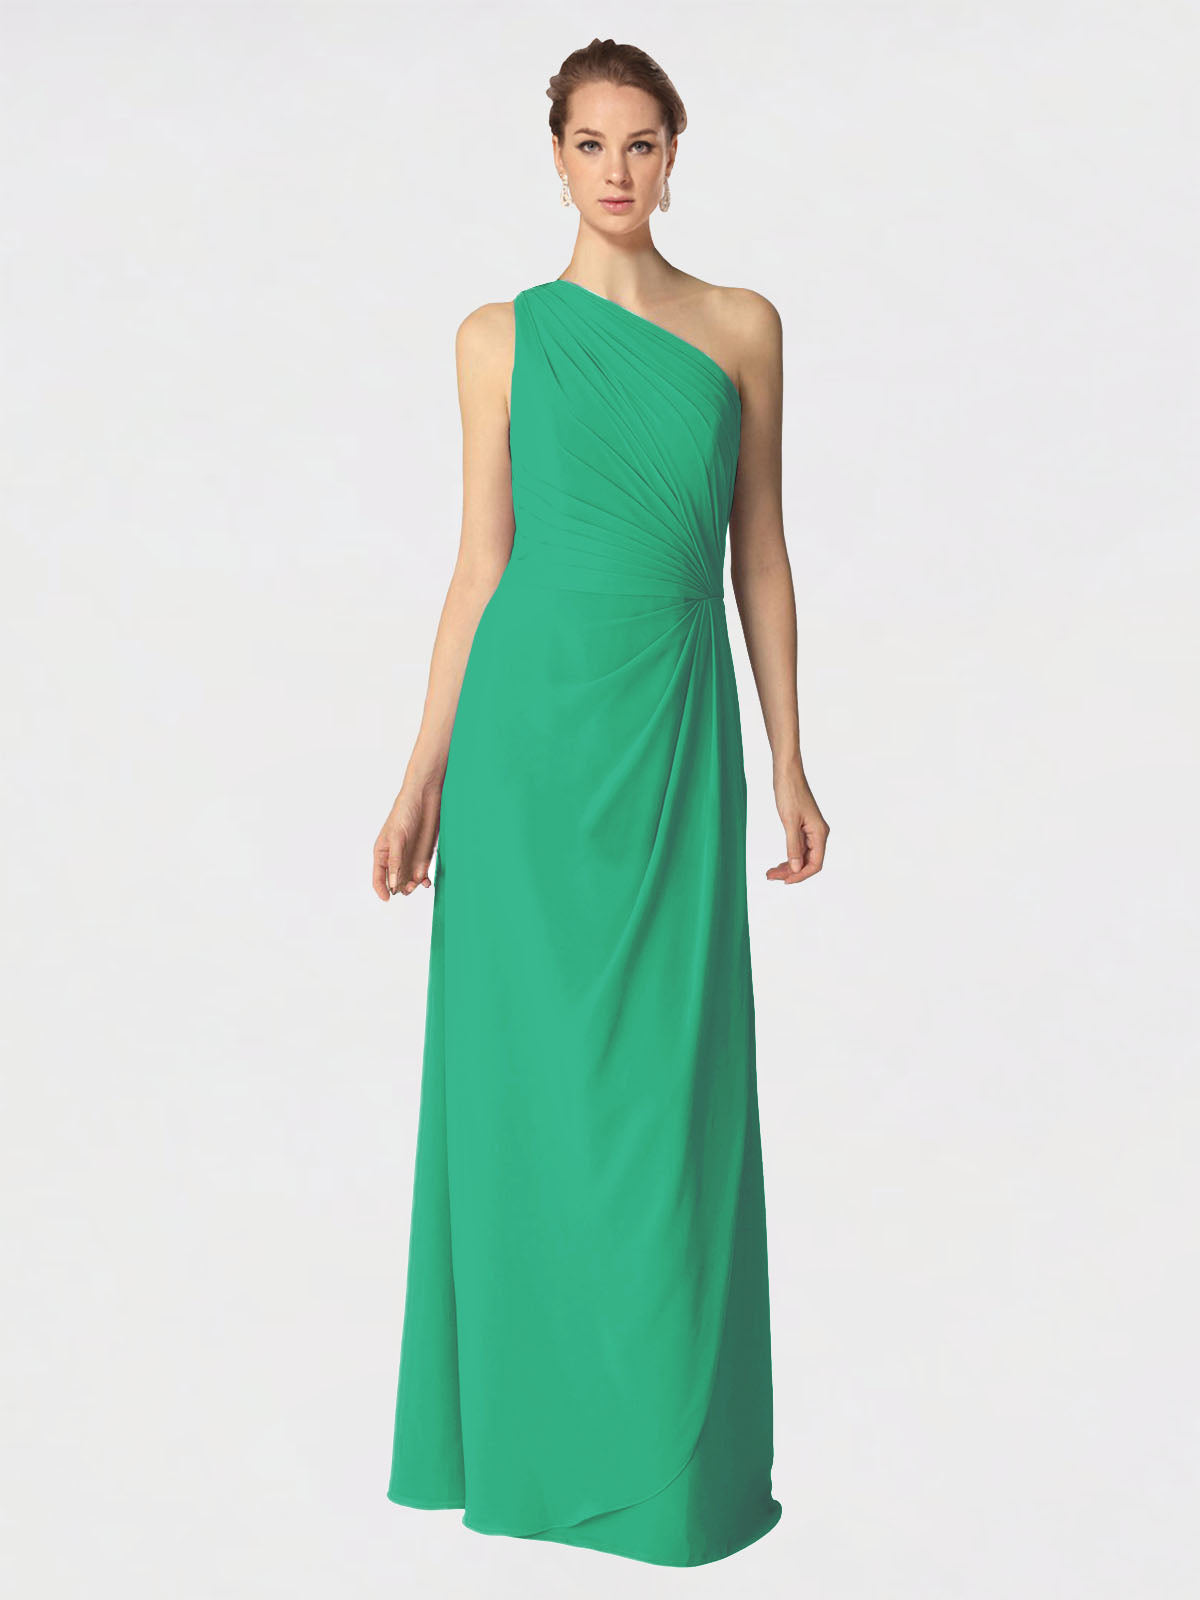 Long A-Line One Shoulder Sleeveless Emerald Green Chiffon Bridesmaid Dress Aurora